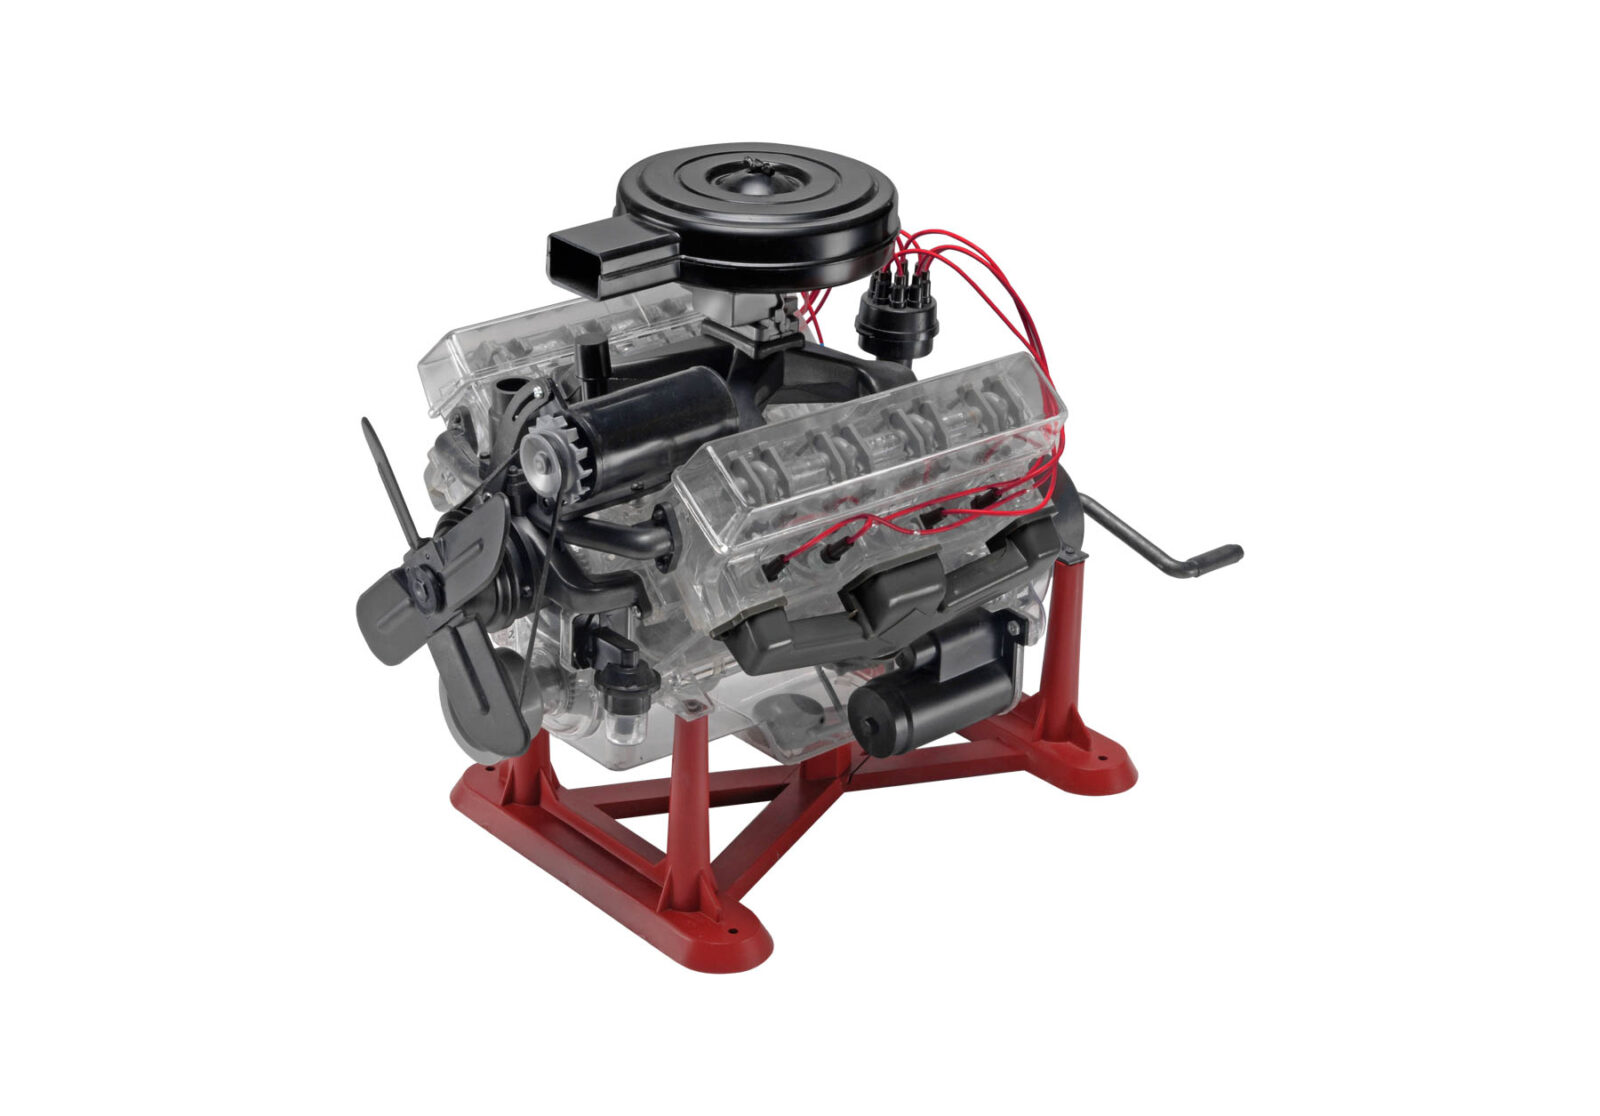 Revell 1 4 Scale Working V8 Model Engine 1600x1116 - Revell 1:4 Scale Working V8 Model Engine